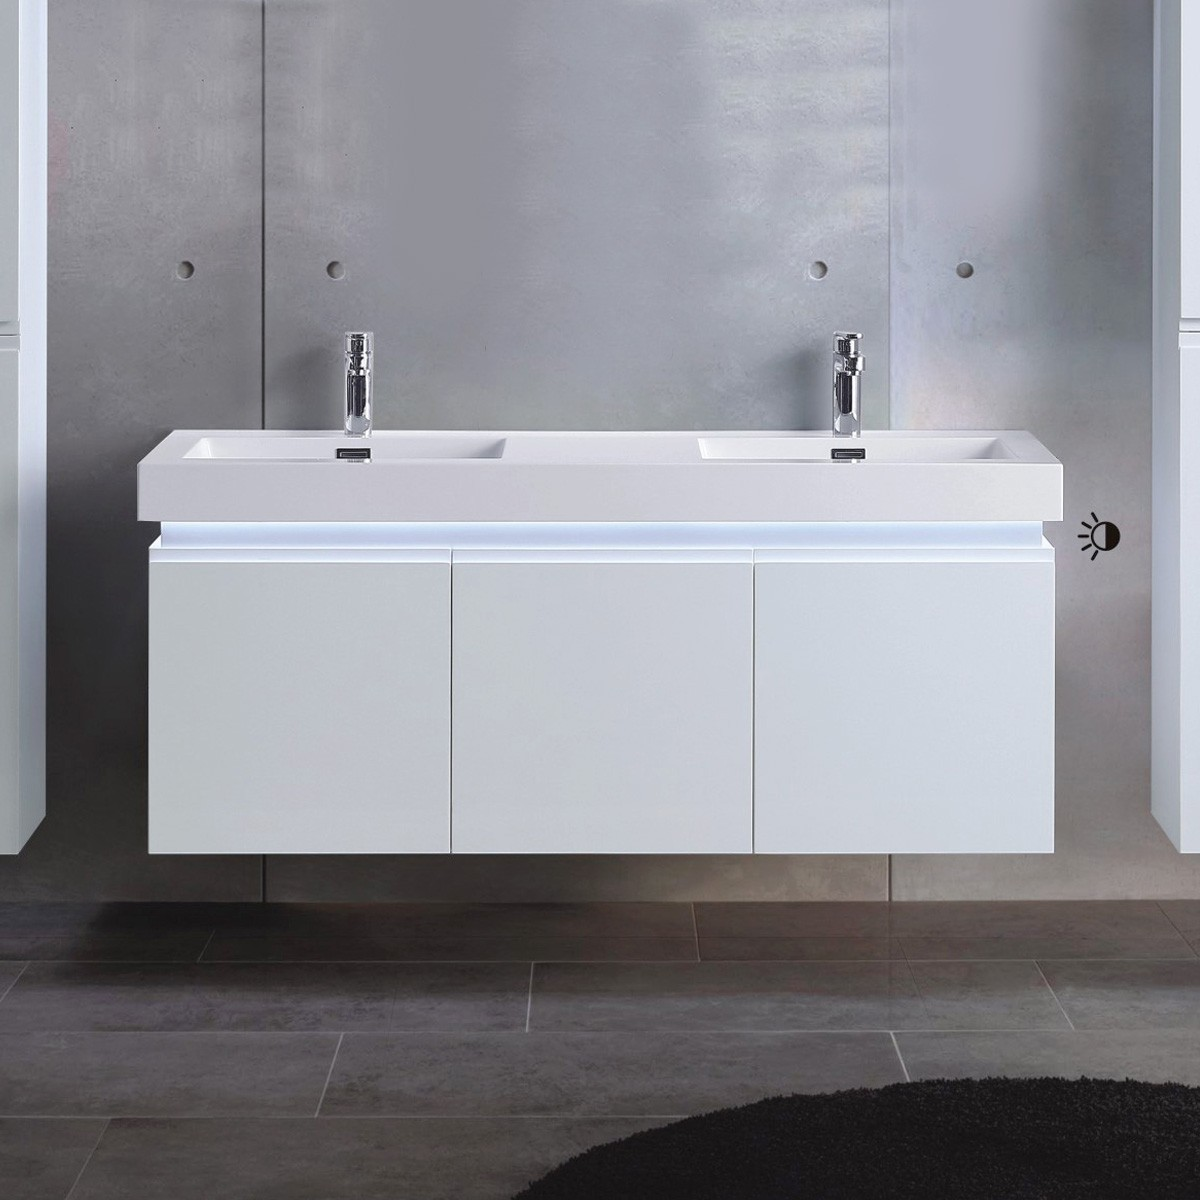 54 In. Wall Mount Vanity with Double Basin (ML1380-V)